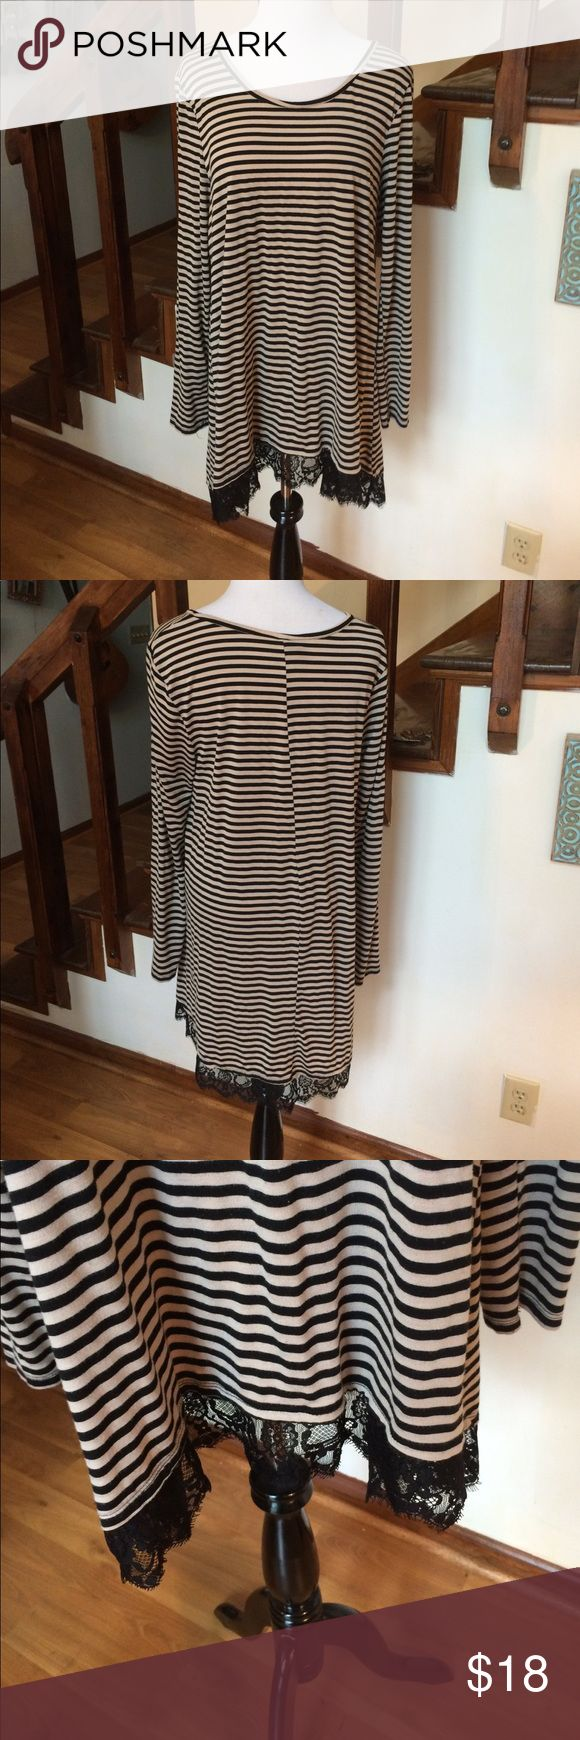 Knit Stripe Top with Black Lace Accent This dress op can be worn as a short dress or Tunic with leggings soft knot fabric and pretty lace accent at hem Massini Tops Blouses